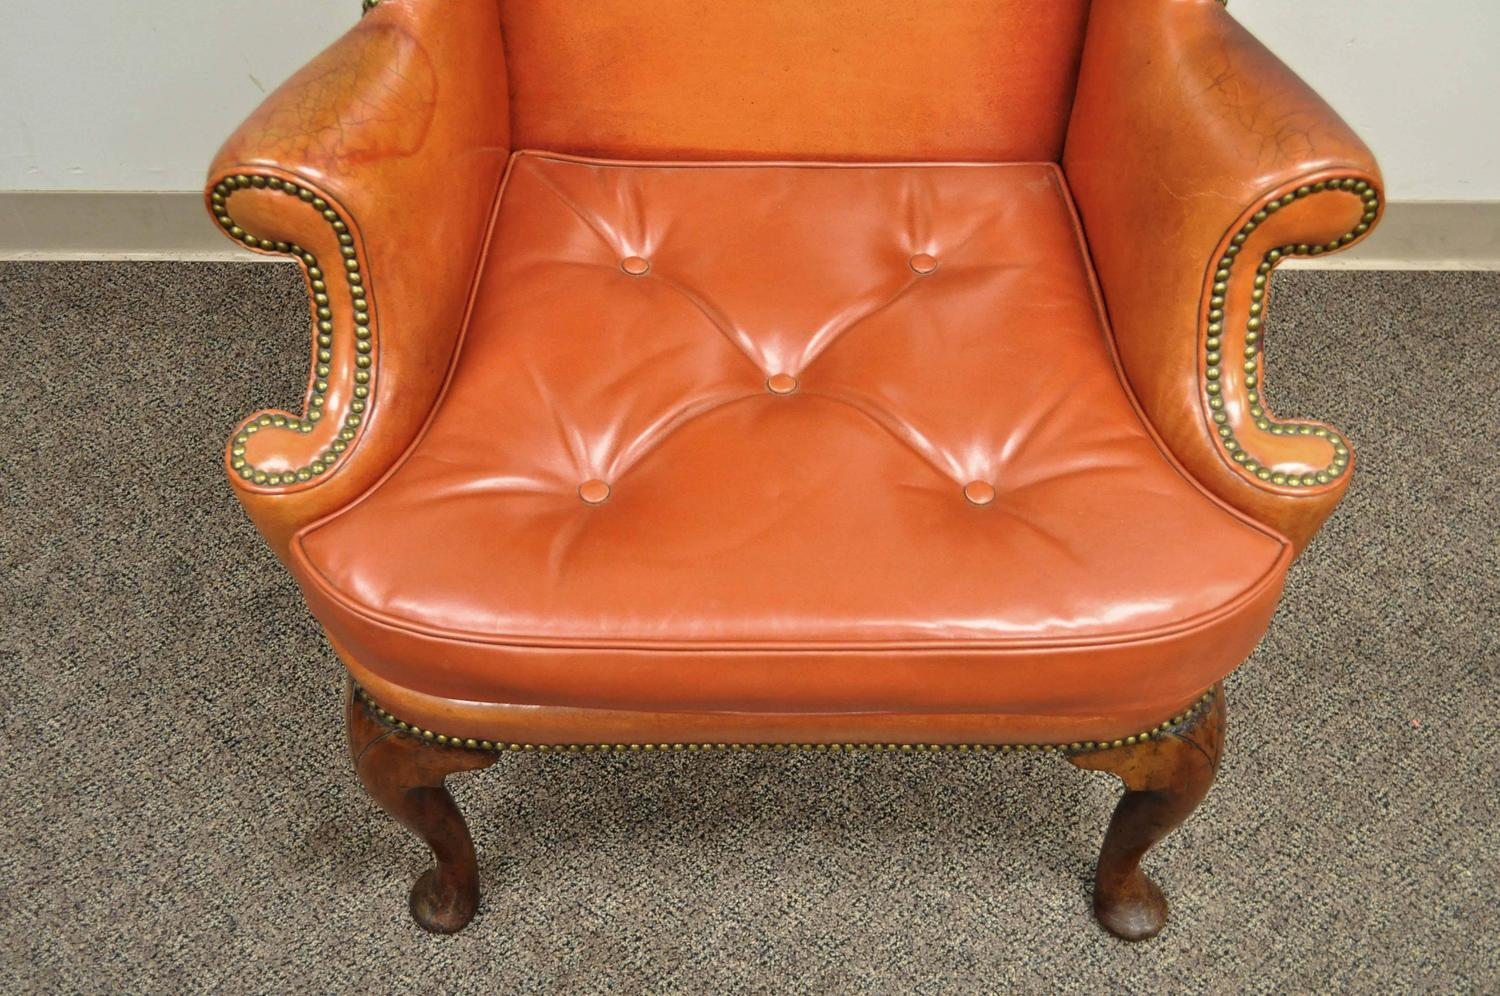 Orange Leather Chair Antique 19th Century Burnt Orange Distressed Leather